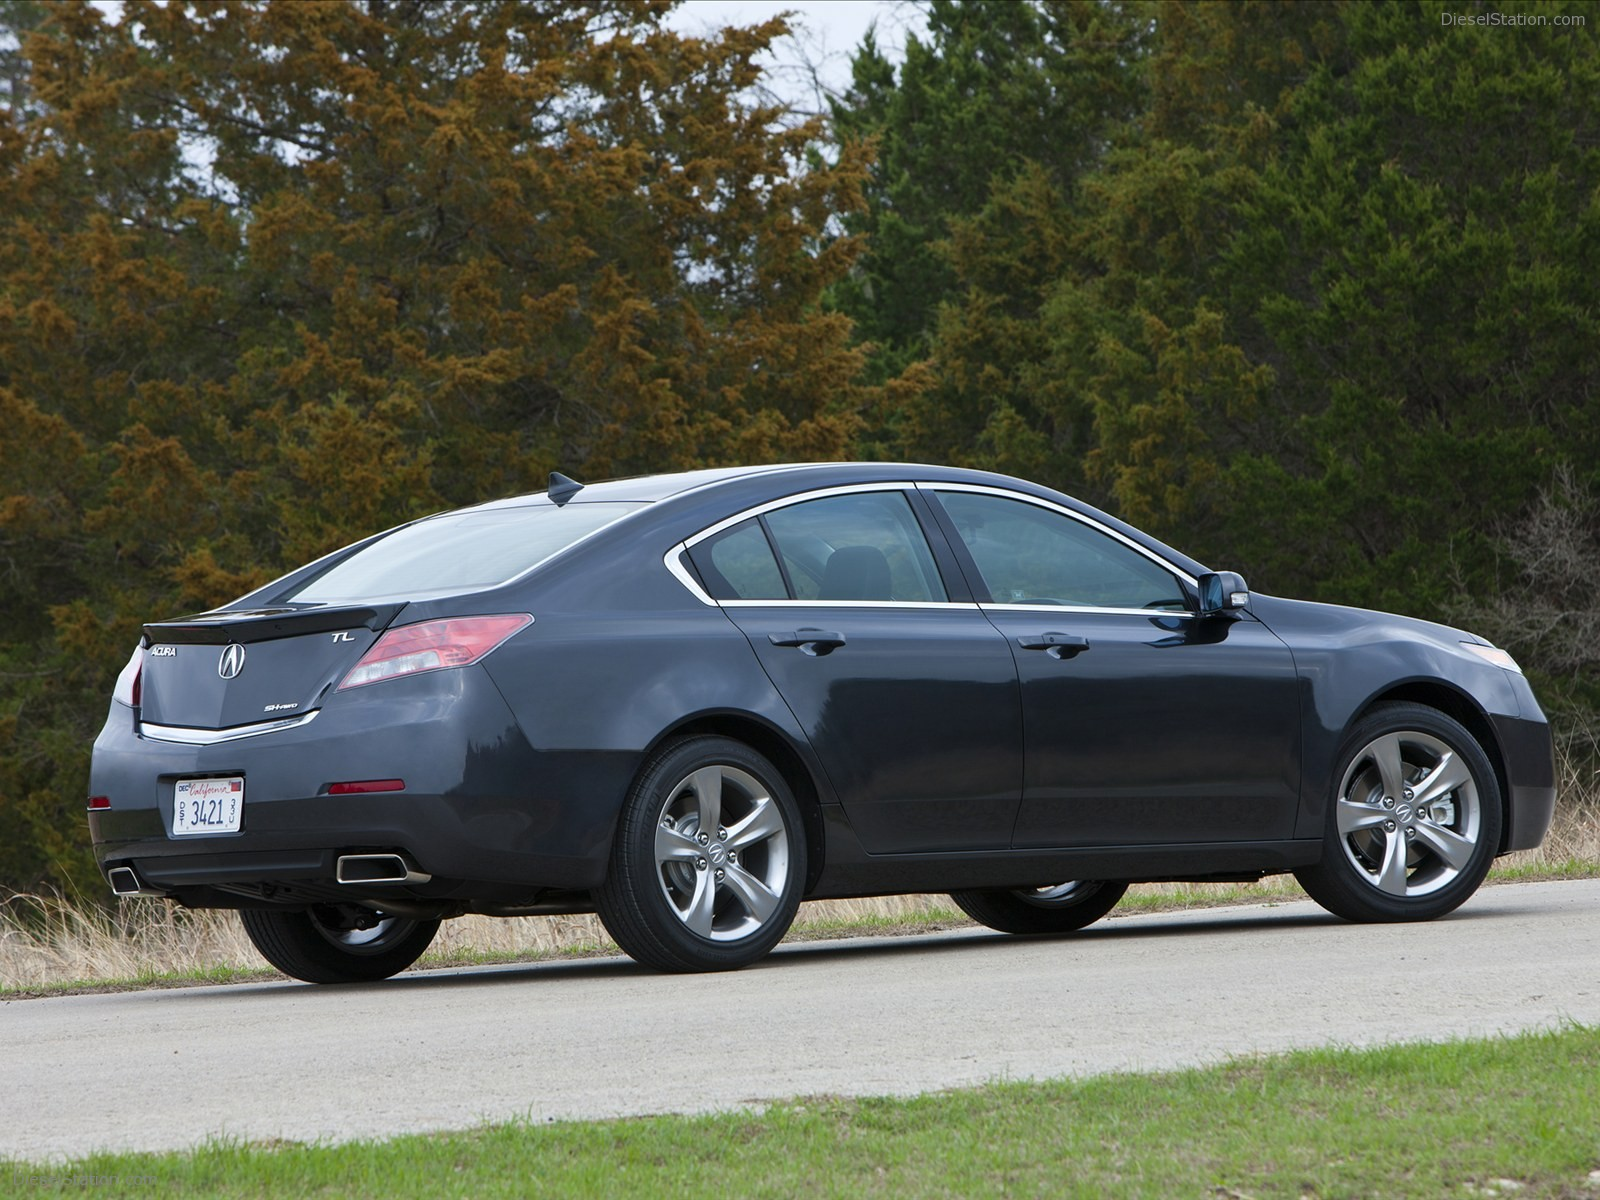 acura tl iv 2013 images